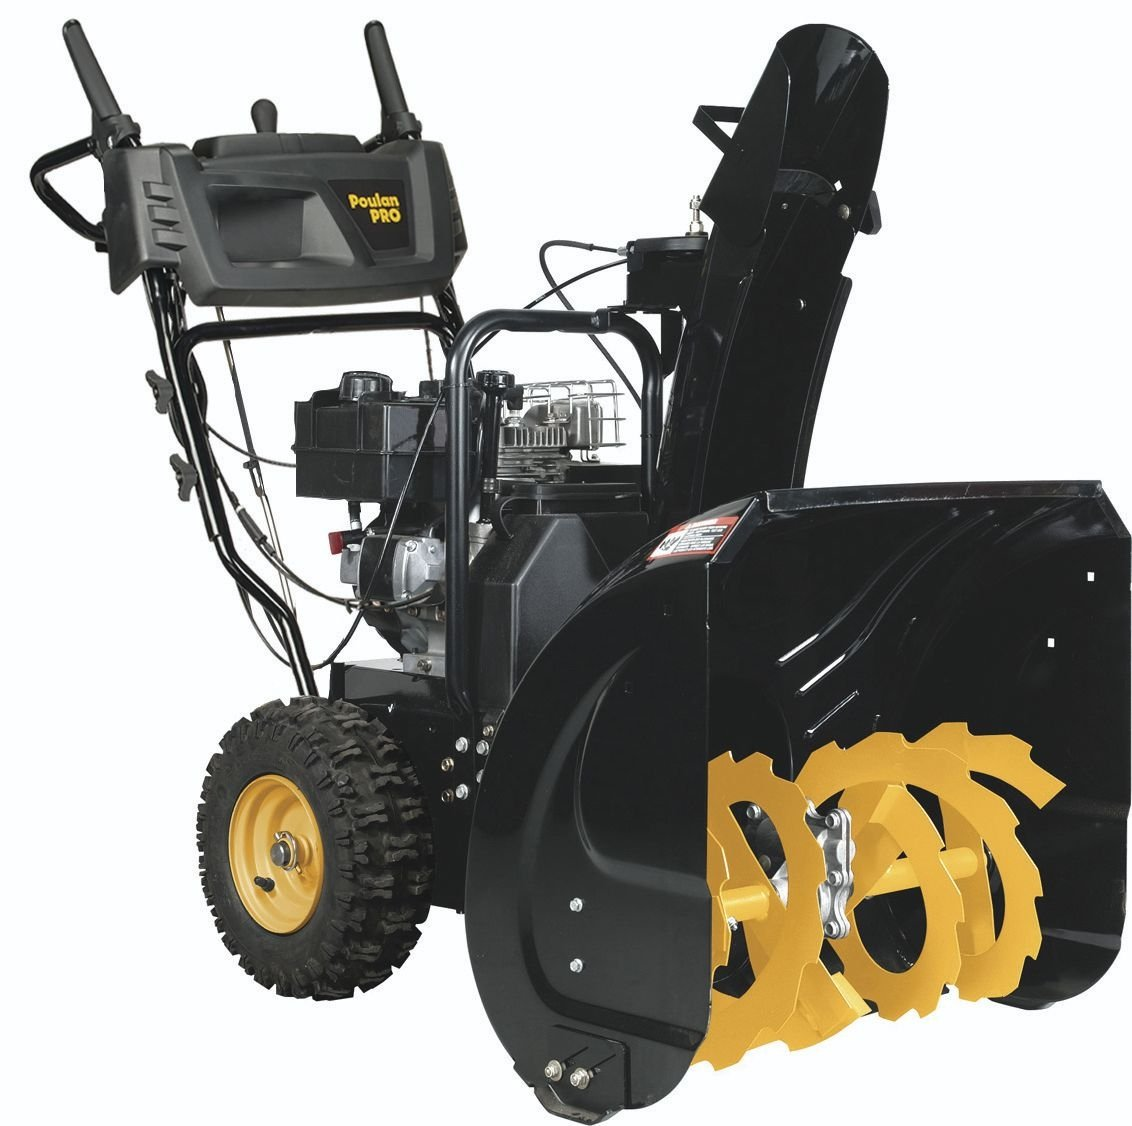 24 inch Snow Blowers under $600 – Which is the Best? Craftsman, Snow-Tek, Murray, Poulan Pro ...